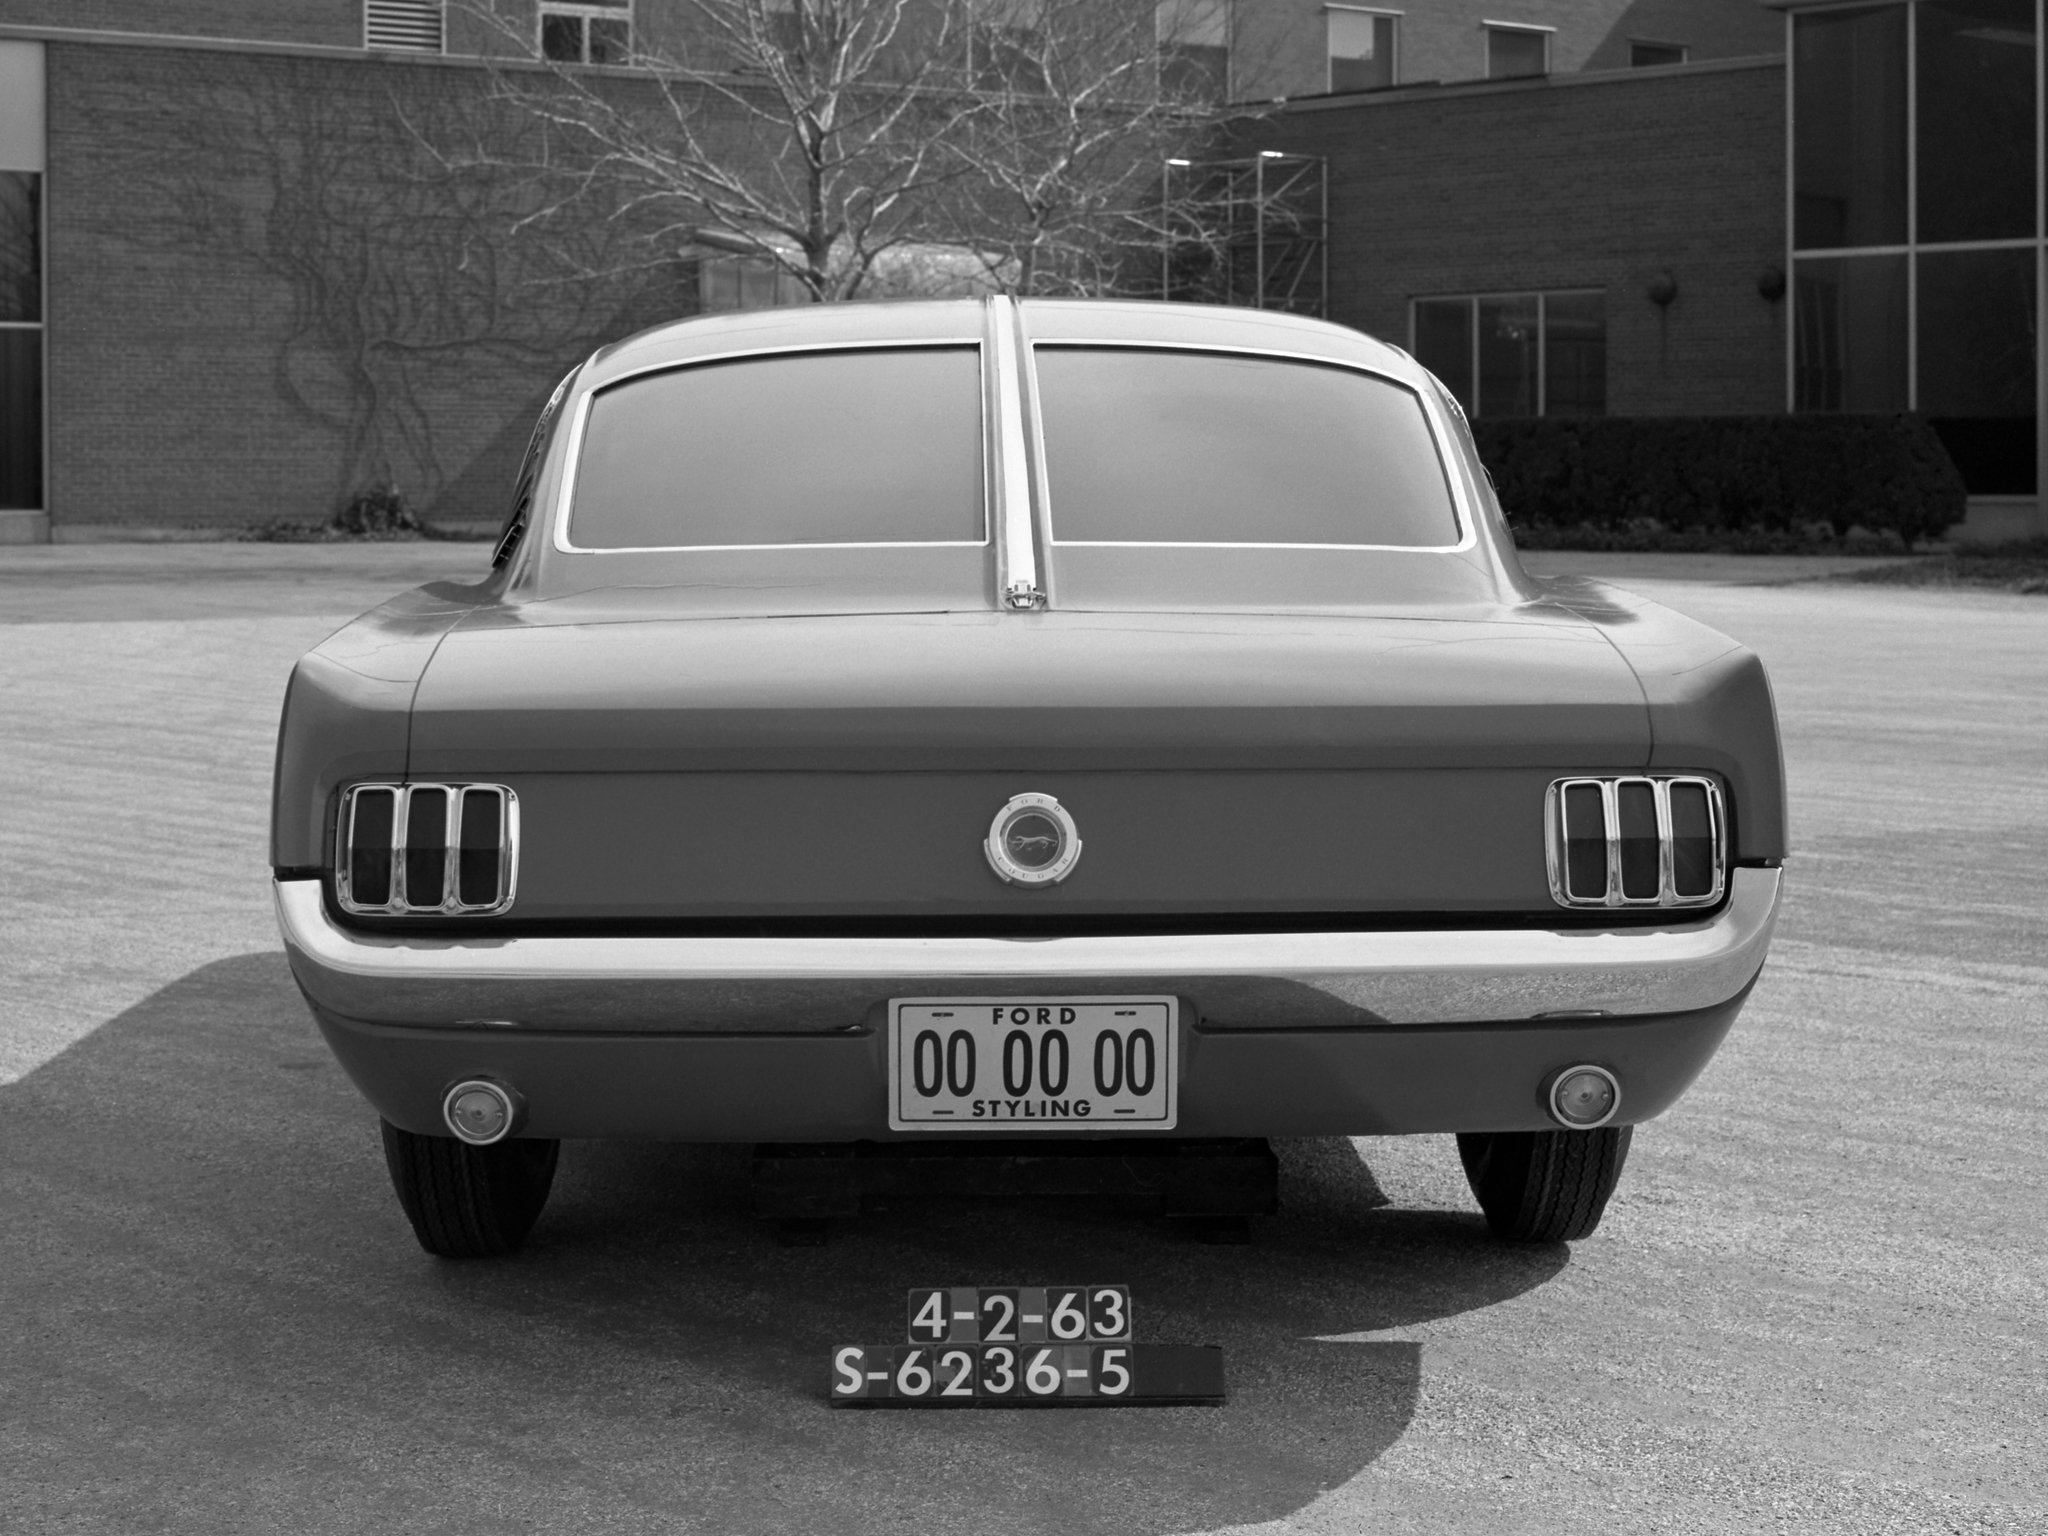 1963 ford mustang cougar fastback proposal mercury concept g wallpaper 2048x1536 310662 wallpaperup